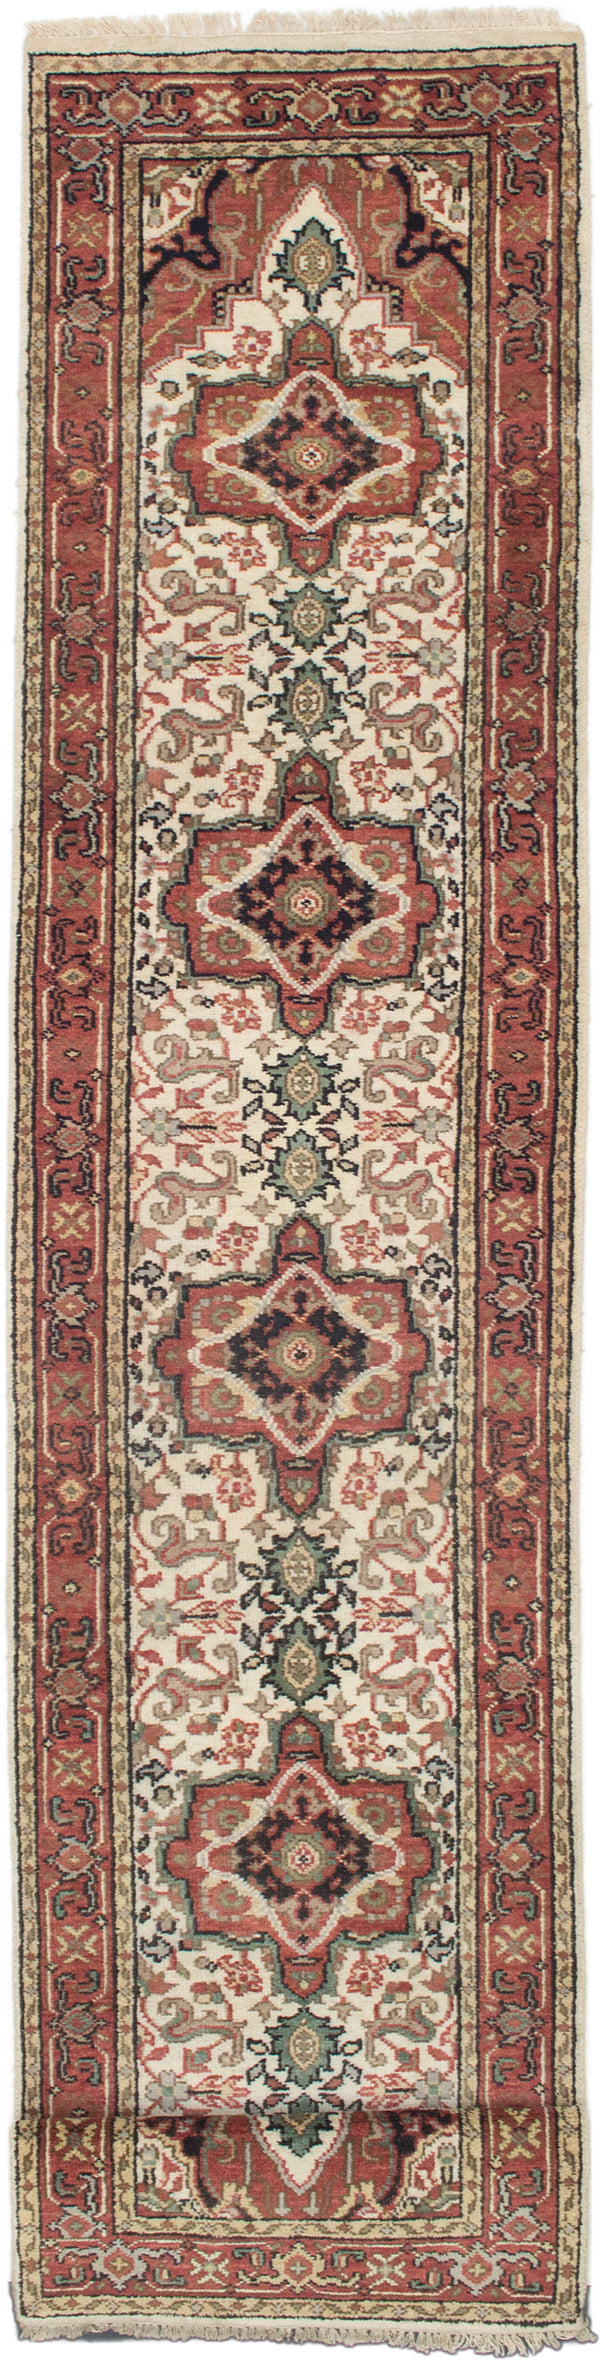 "Hand-knotted Indian Floral  Traditional Serapi-Heritage Runner rug  Cream, Dark Copper 2'6 x 15'11"" """